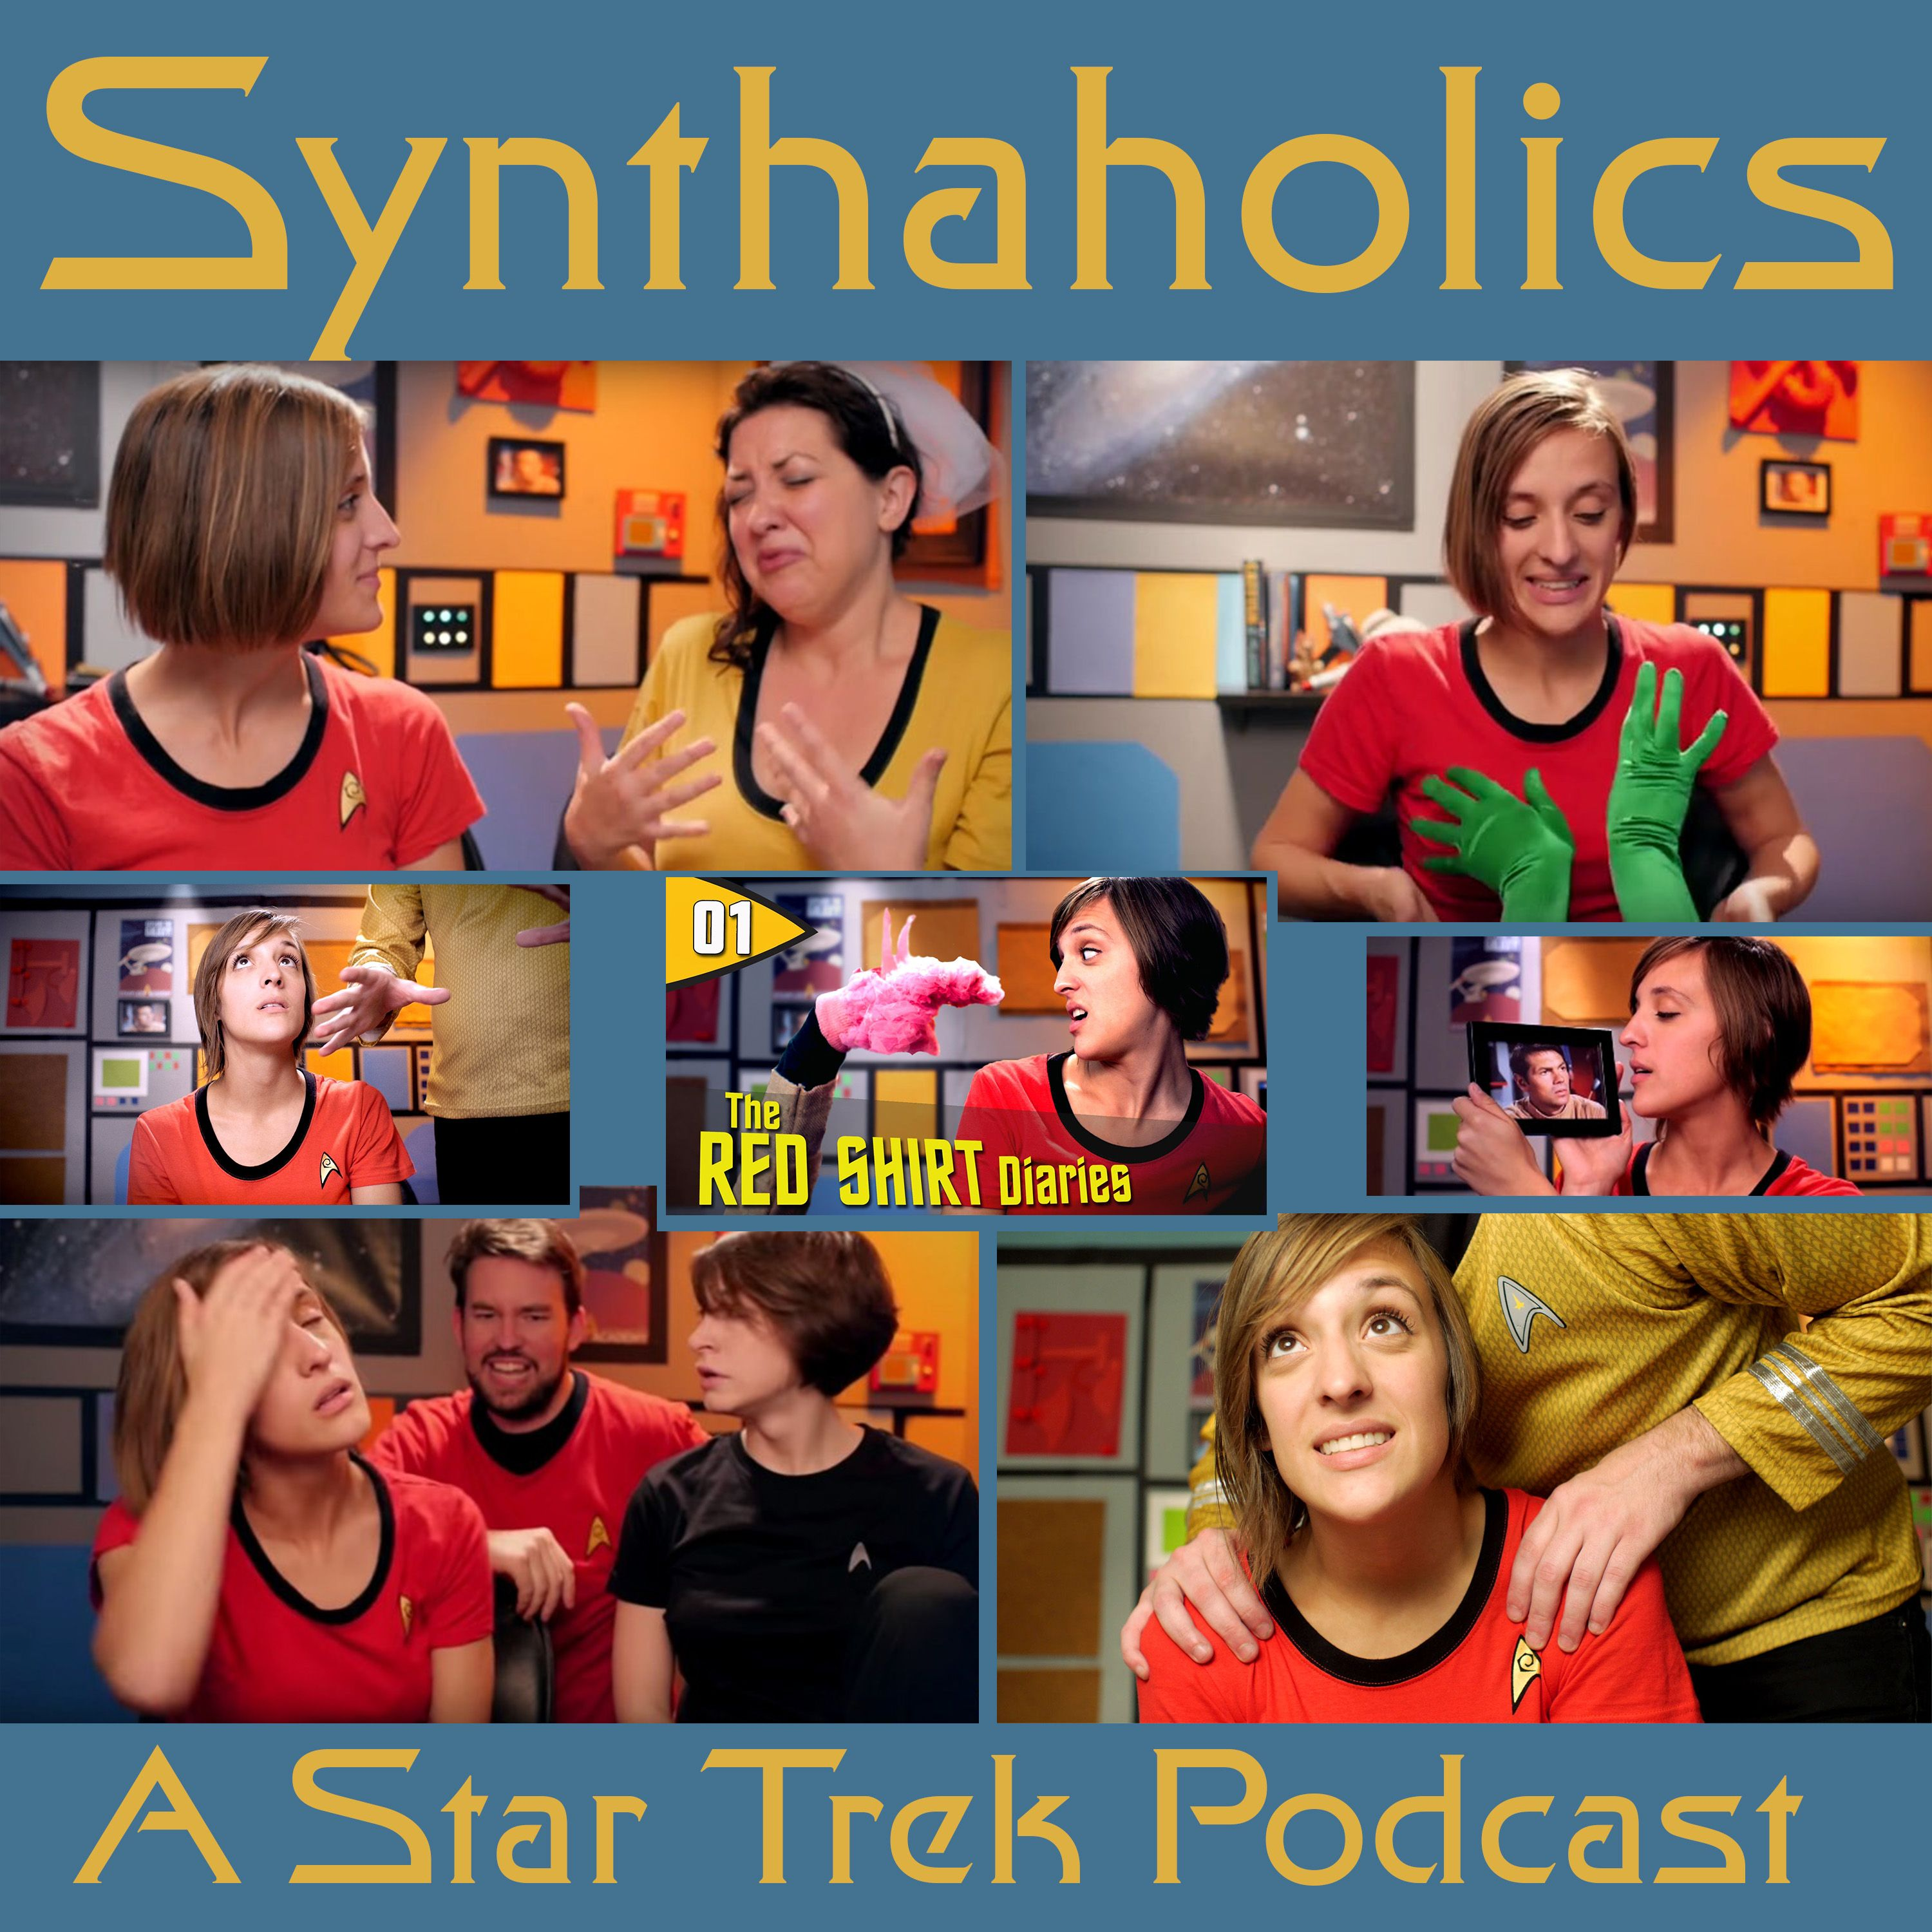 Episode 36: The Red Shirt Diaries!  This week on Synthaholics we welcome Ashley Robinson (@AshleyVRobinson) and Jason Inman (@Jawiin) from The Red Shirt Diaries (www.theredshirtdiaries.com). We talk about how the show is doing as it is now in the middle of its second season. Jason turns the interview on David and has him answer some questions about the show from a viewer perspective. Fayth asks some very interesting behind the scenes questions to which we get some awesome answers! ...